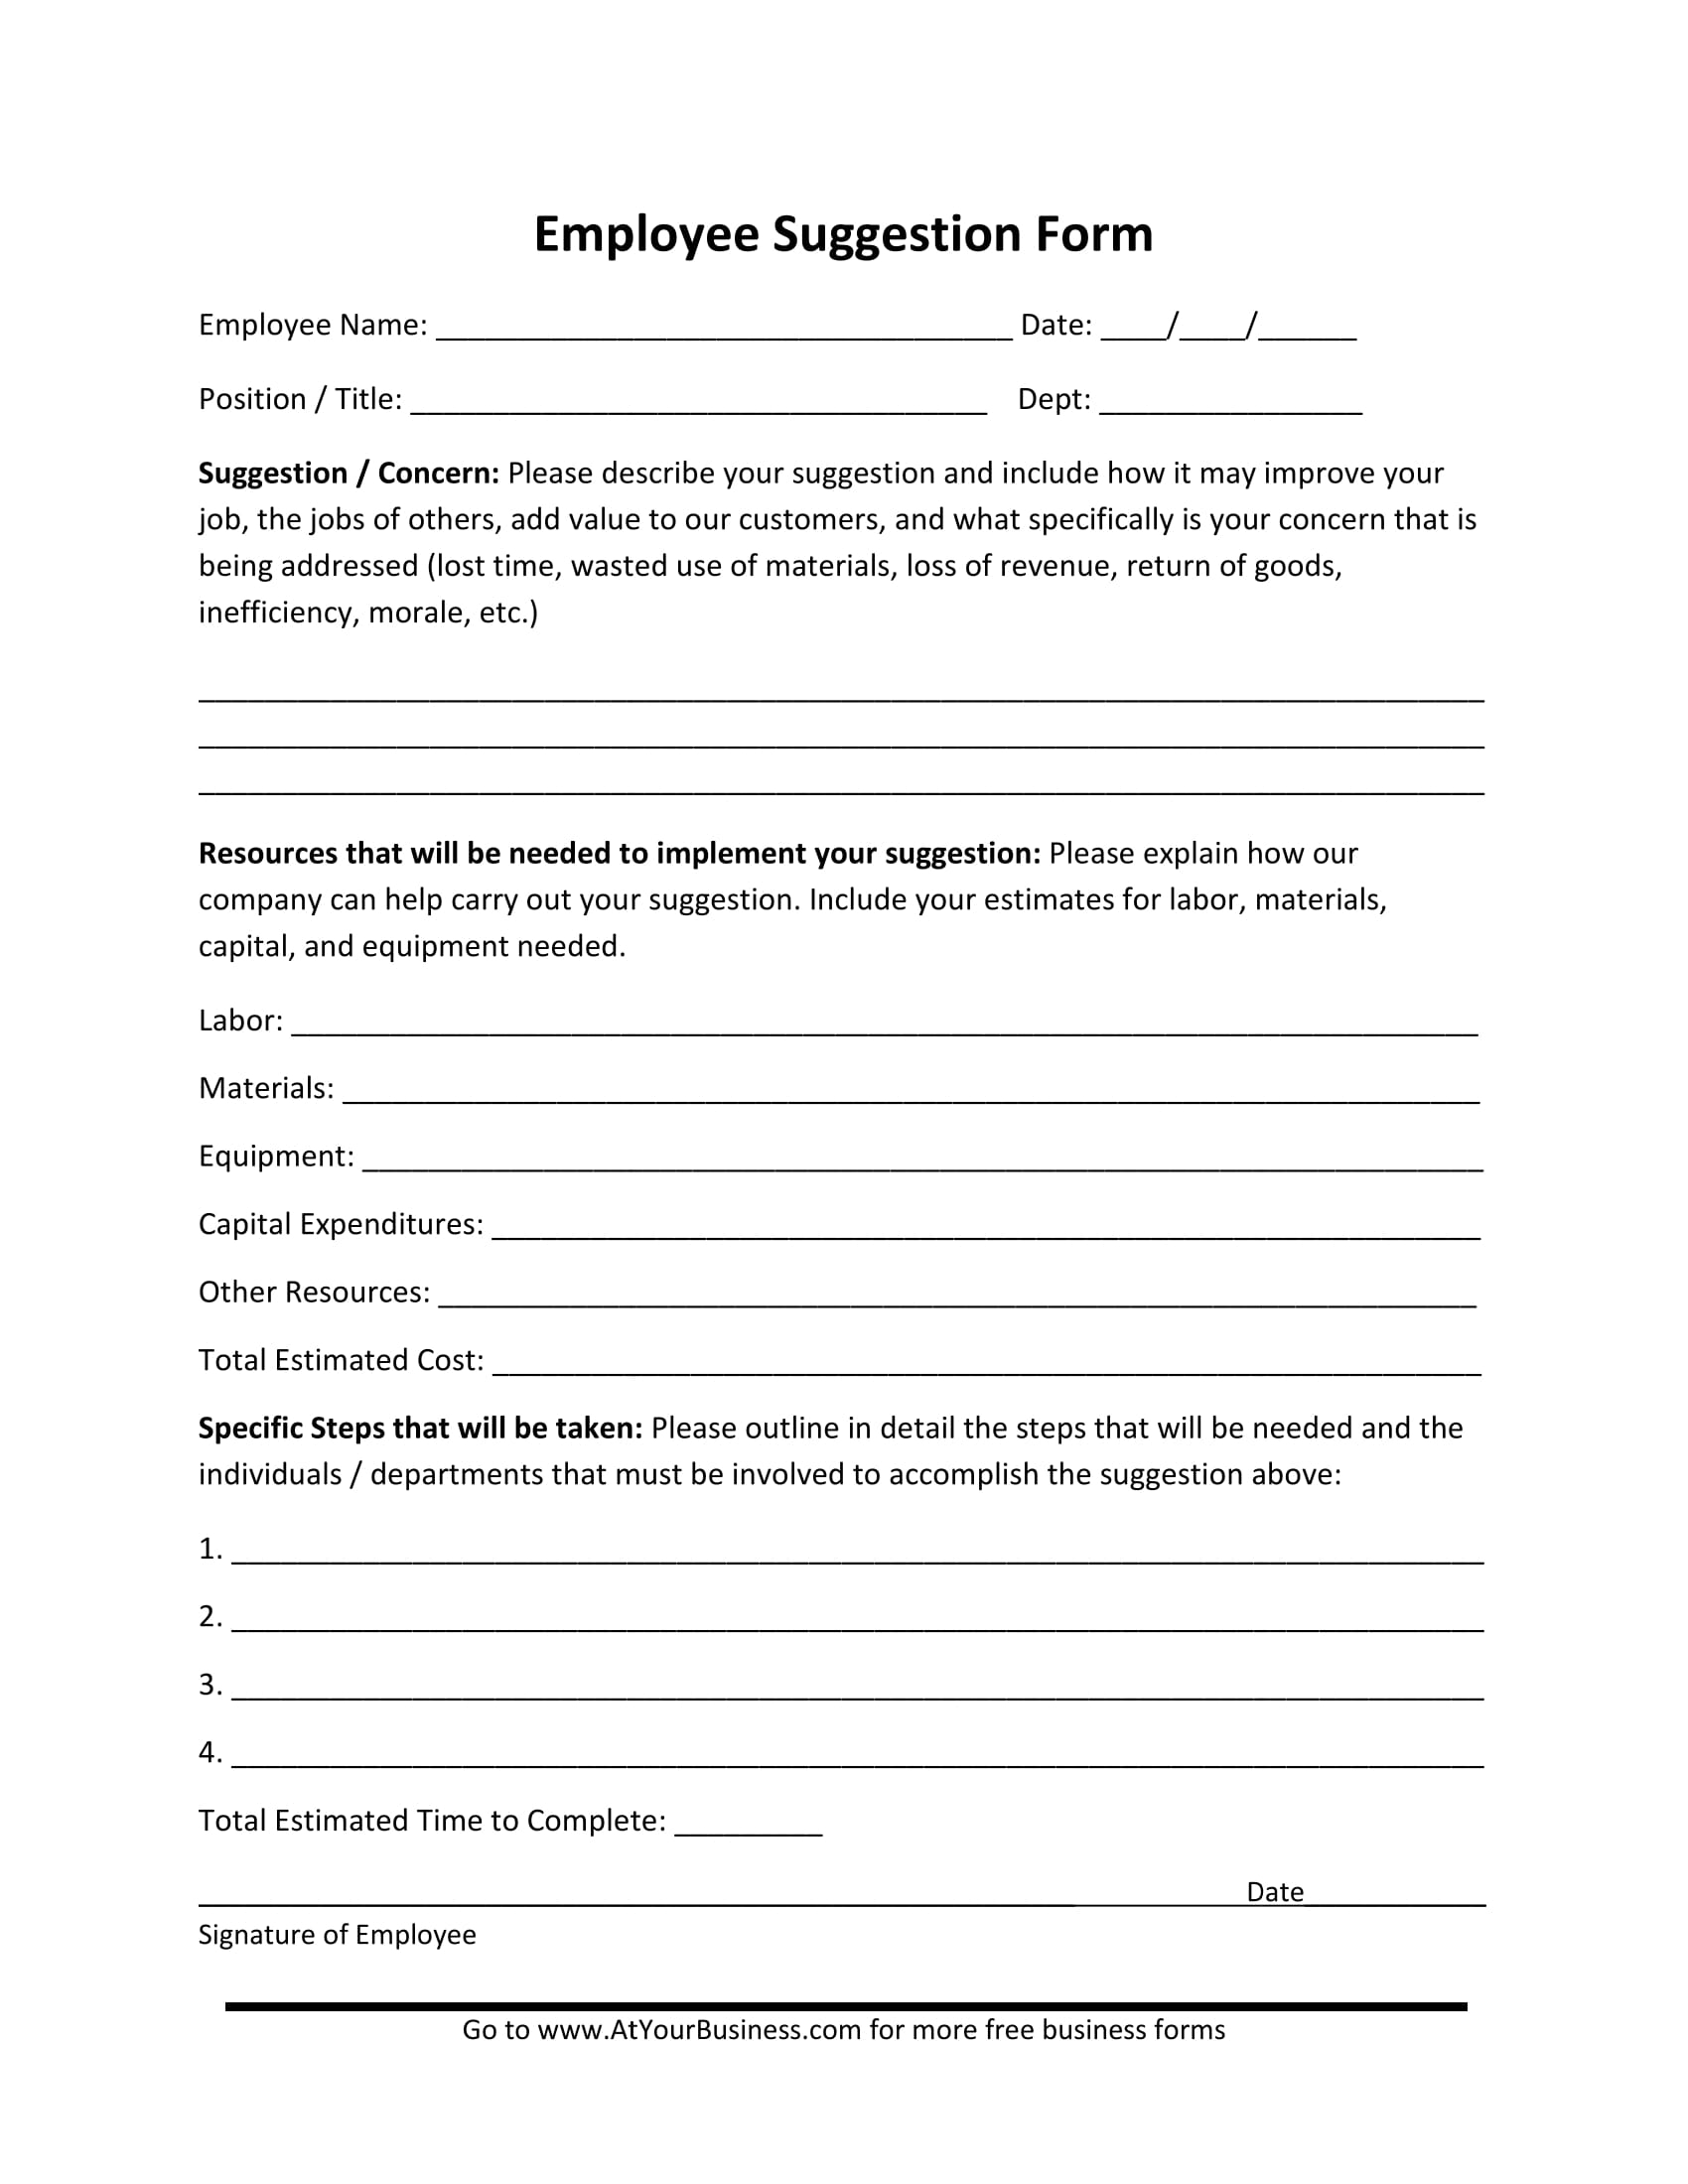 employee suggestion form sample 1